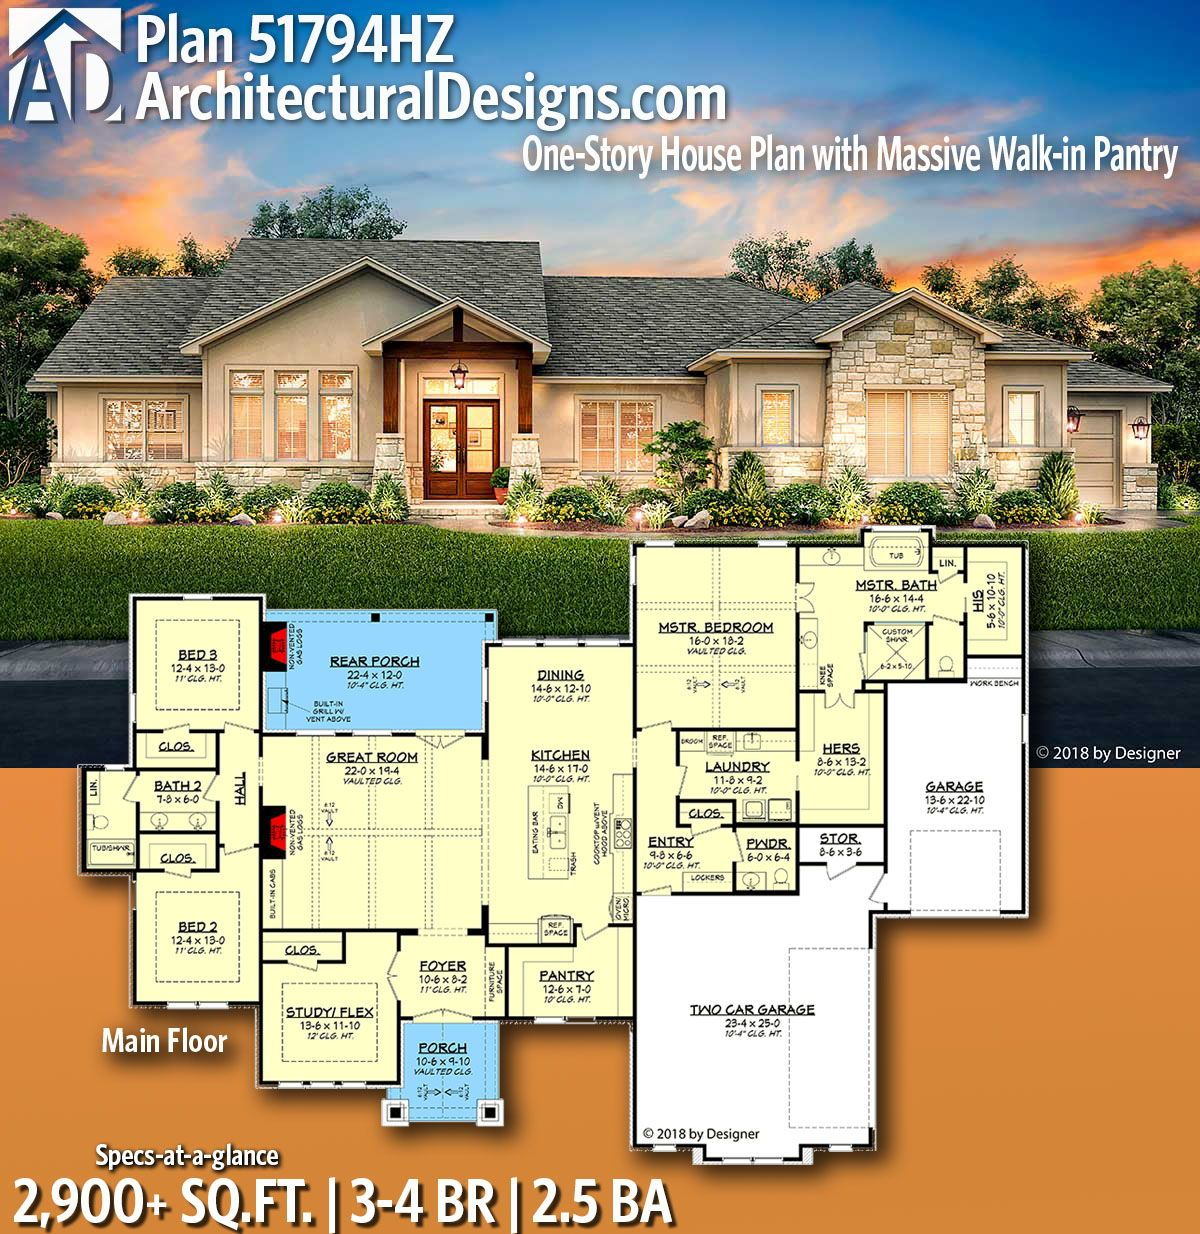 Architectural designs home plan hz gives you bedrooms baths and sq ft ready when are where do want to build also one story house with massive walk in pantry new rh pinterest